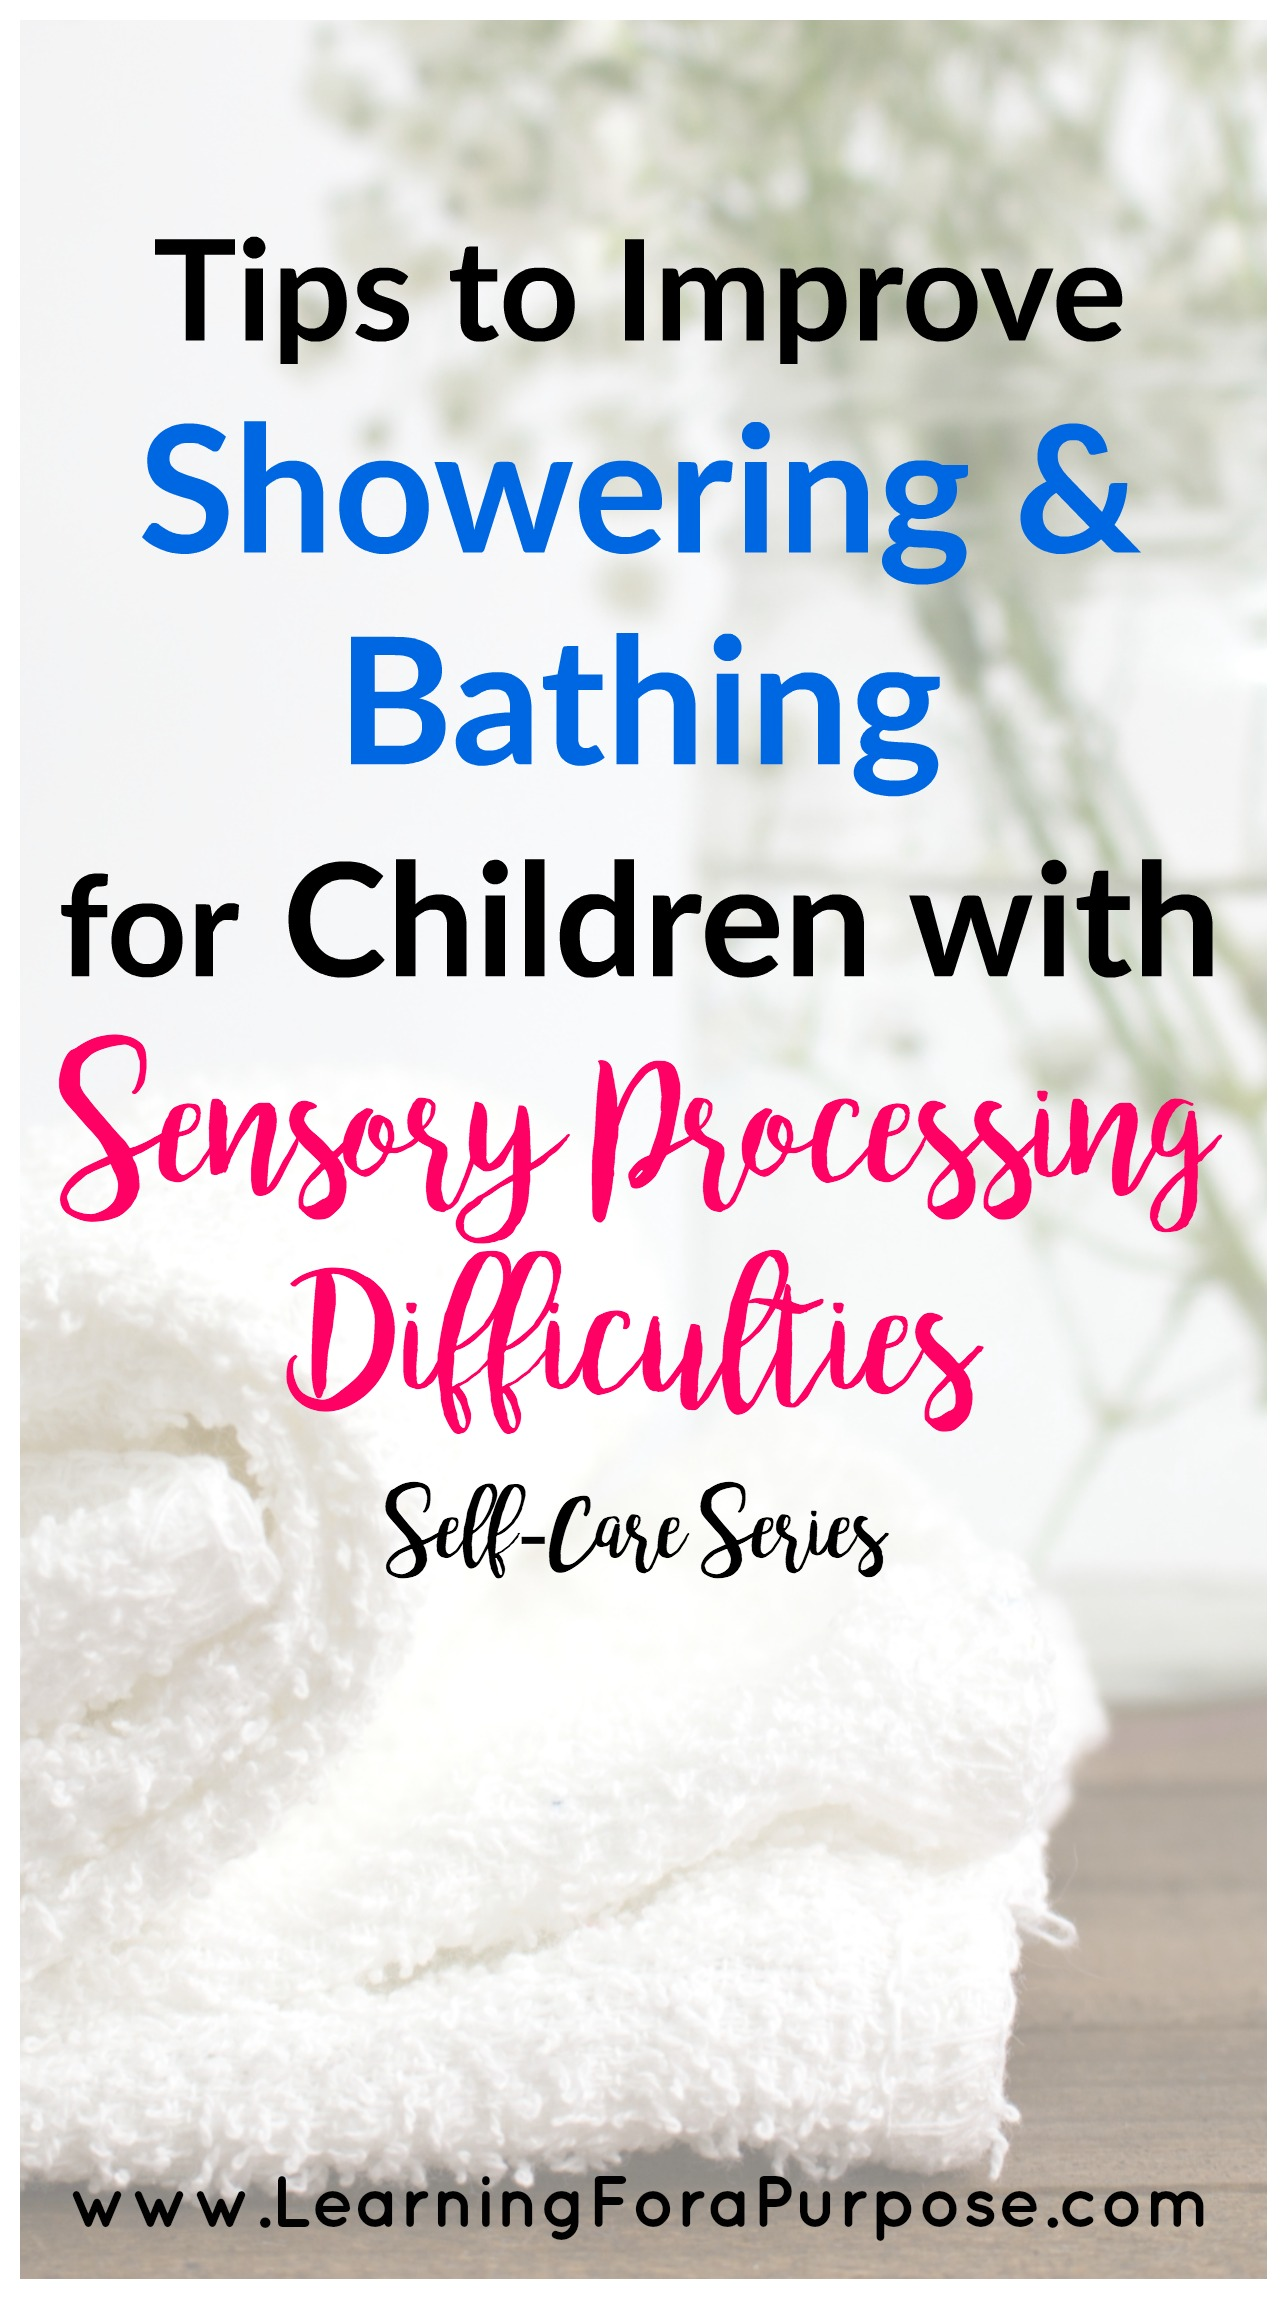 Showering and Bathing Tips for Children with Sensory Processing Difficulties